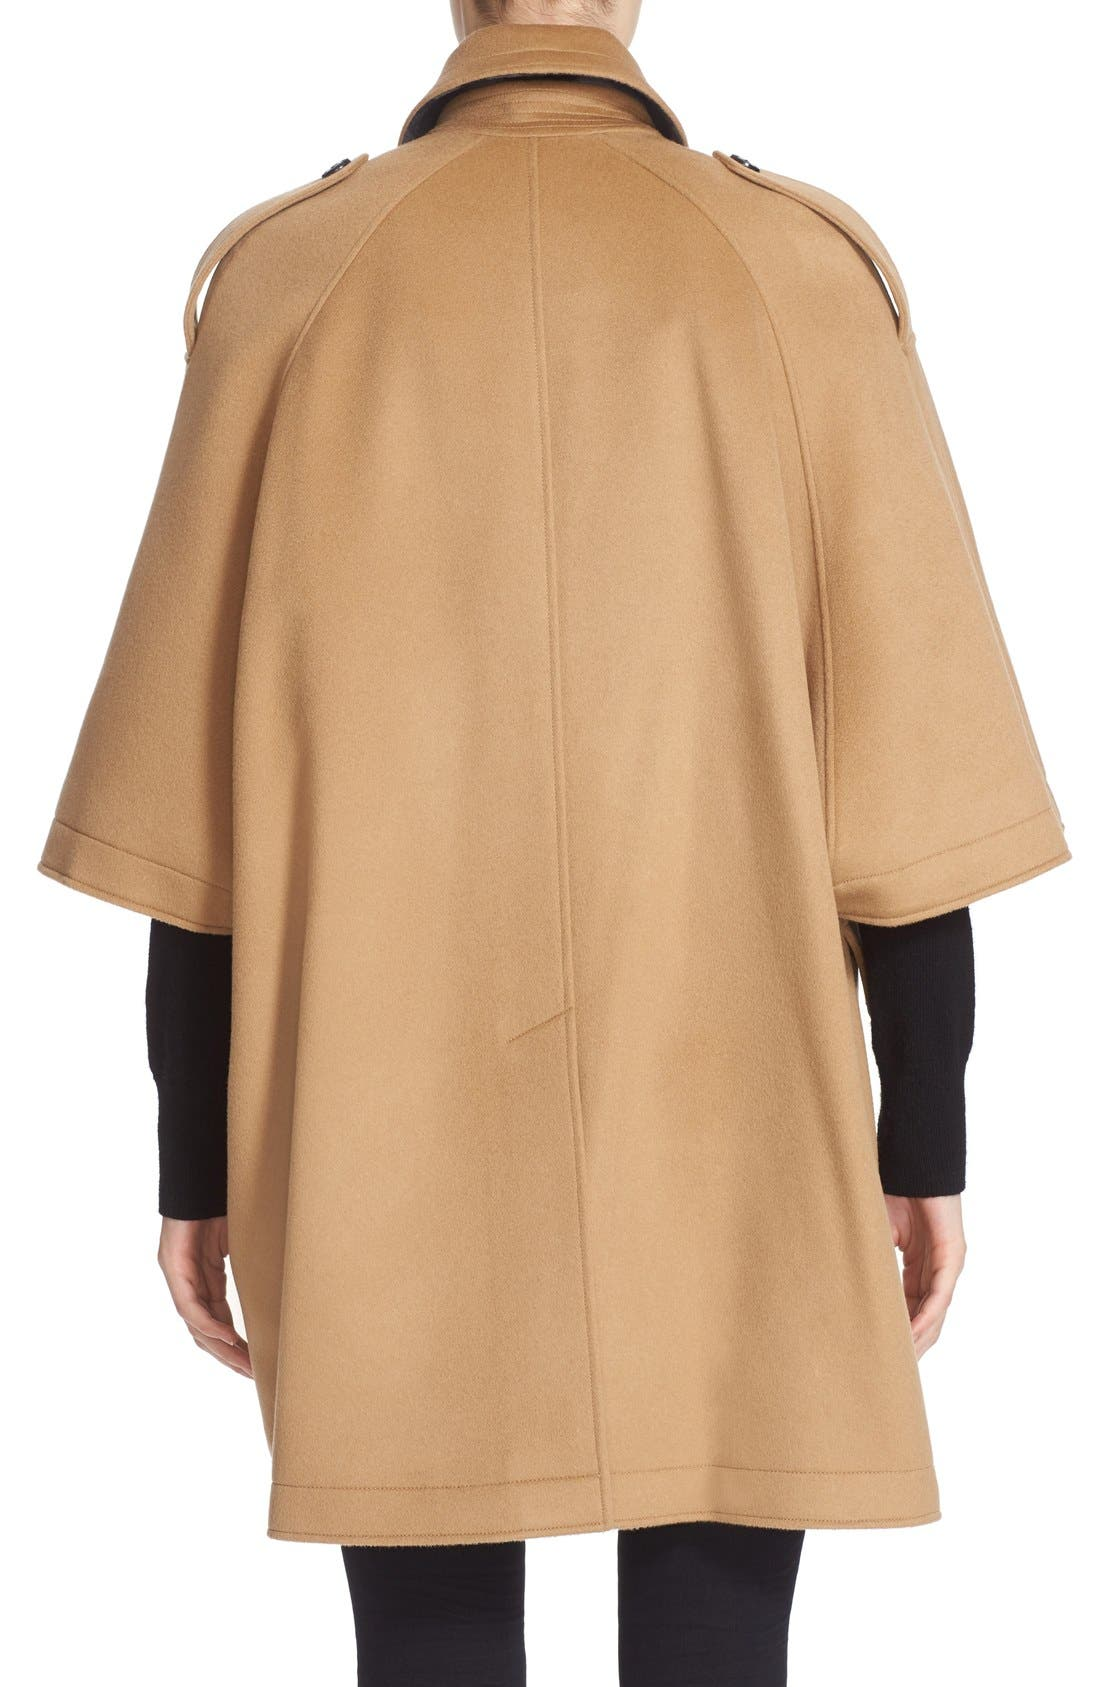 Dennington Trench Cape Coat,                             Alternate thumbnail 2, color,                             231